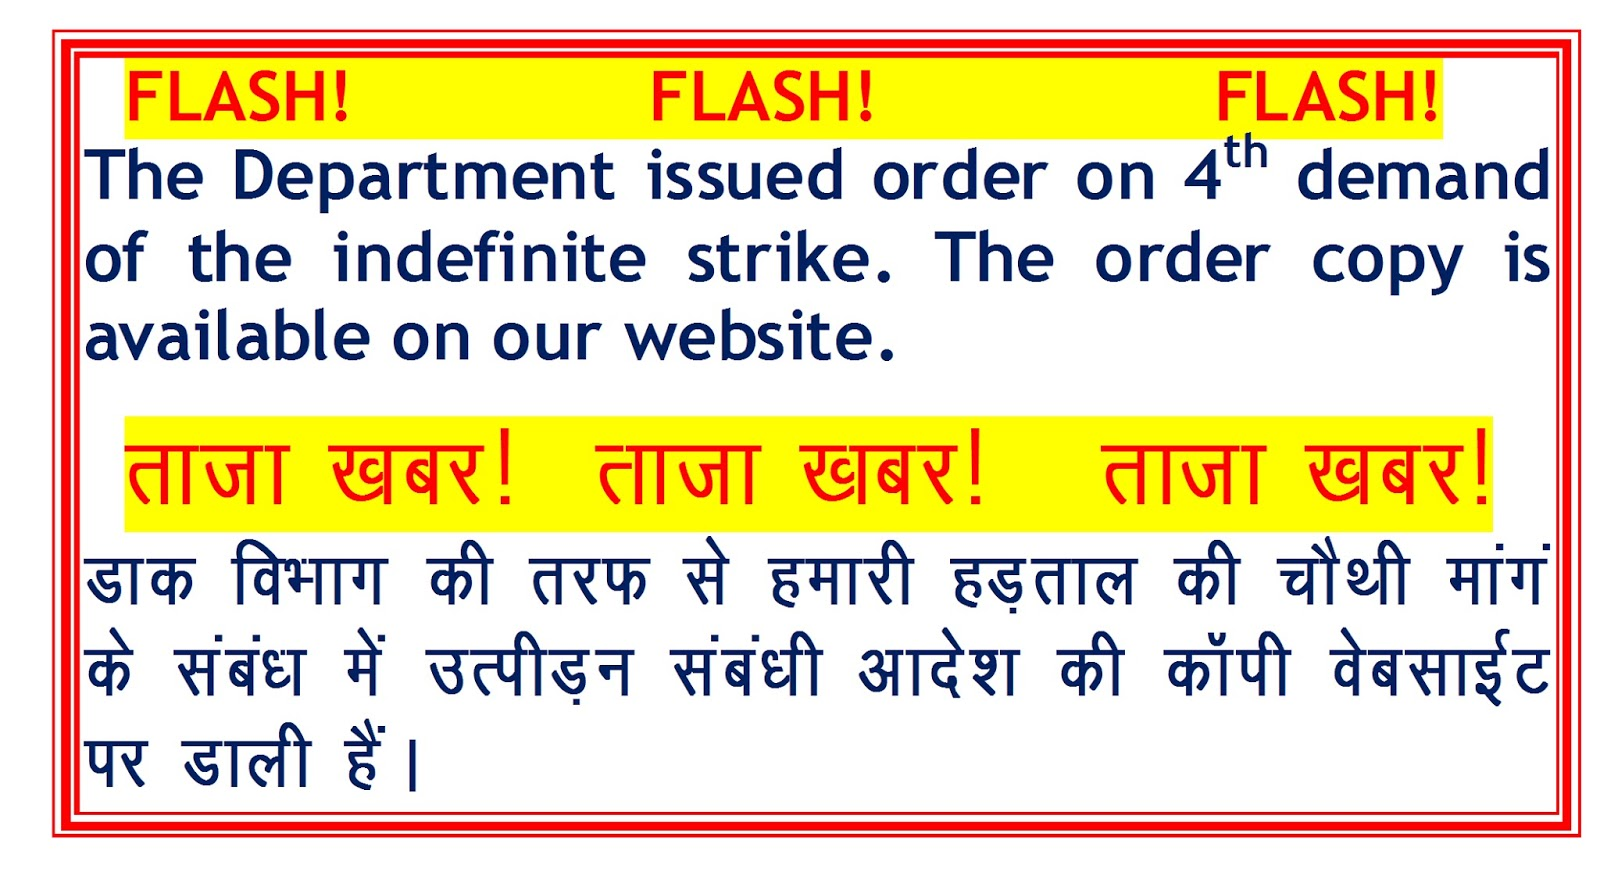 gds pay commission flash news